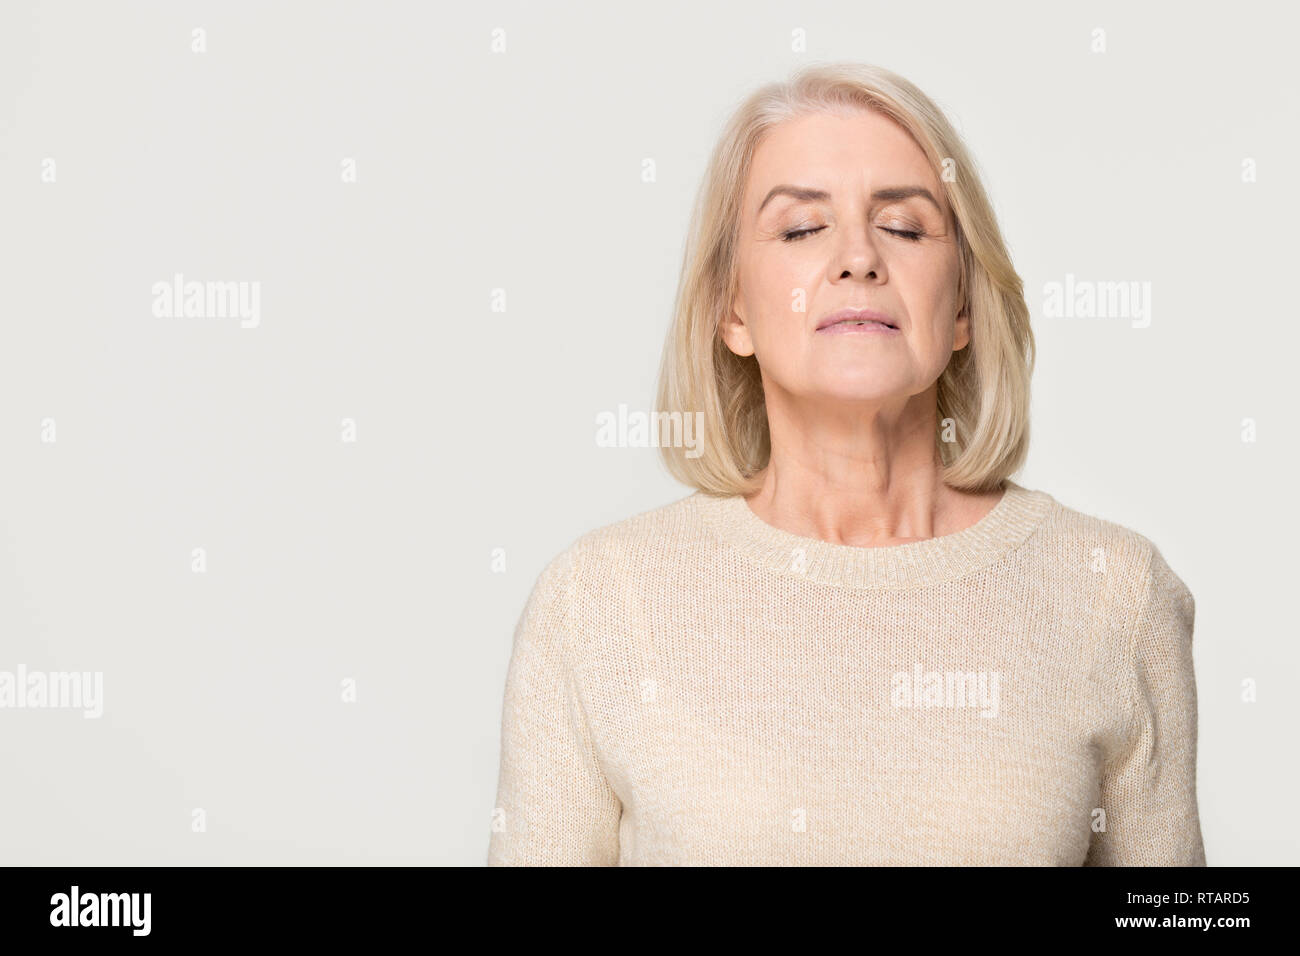 Calm mid aged woman breathing fresh air isolated on background - Stock Image